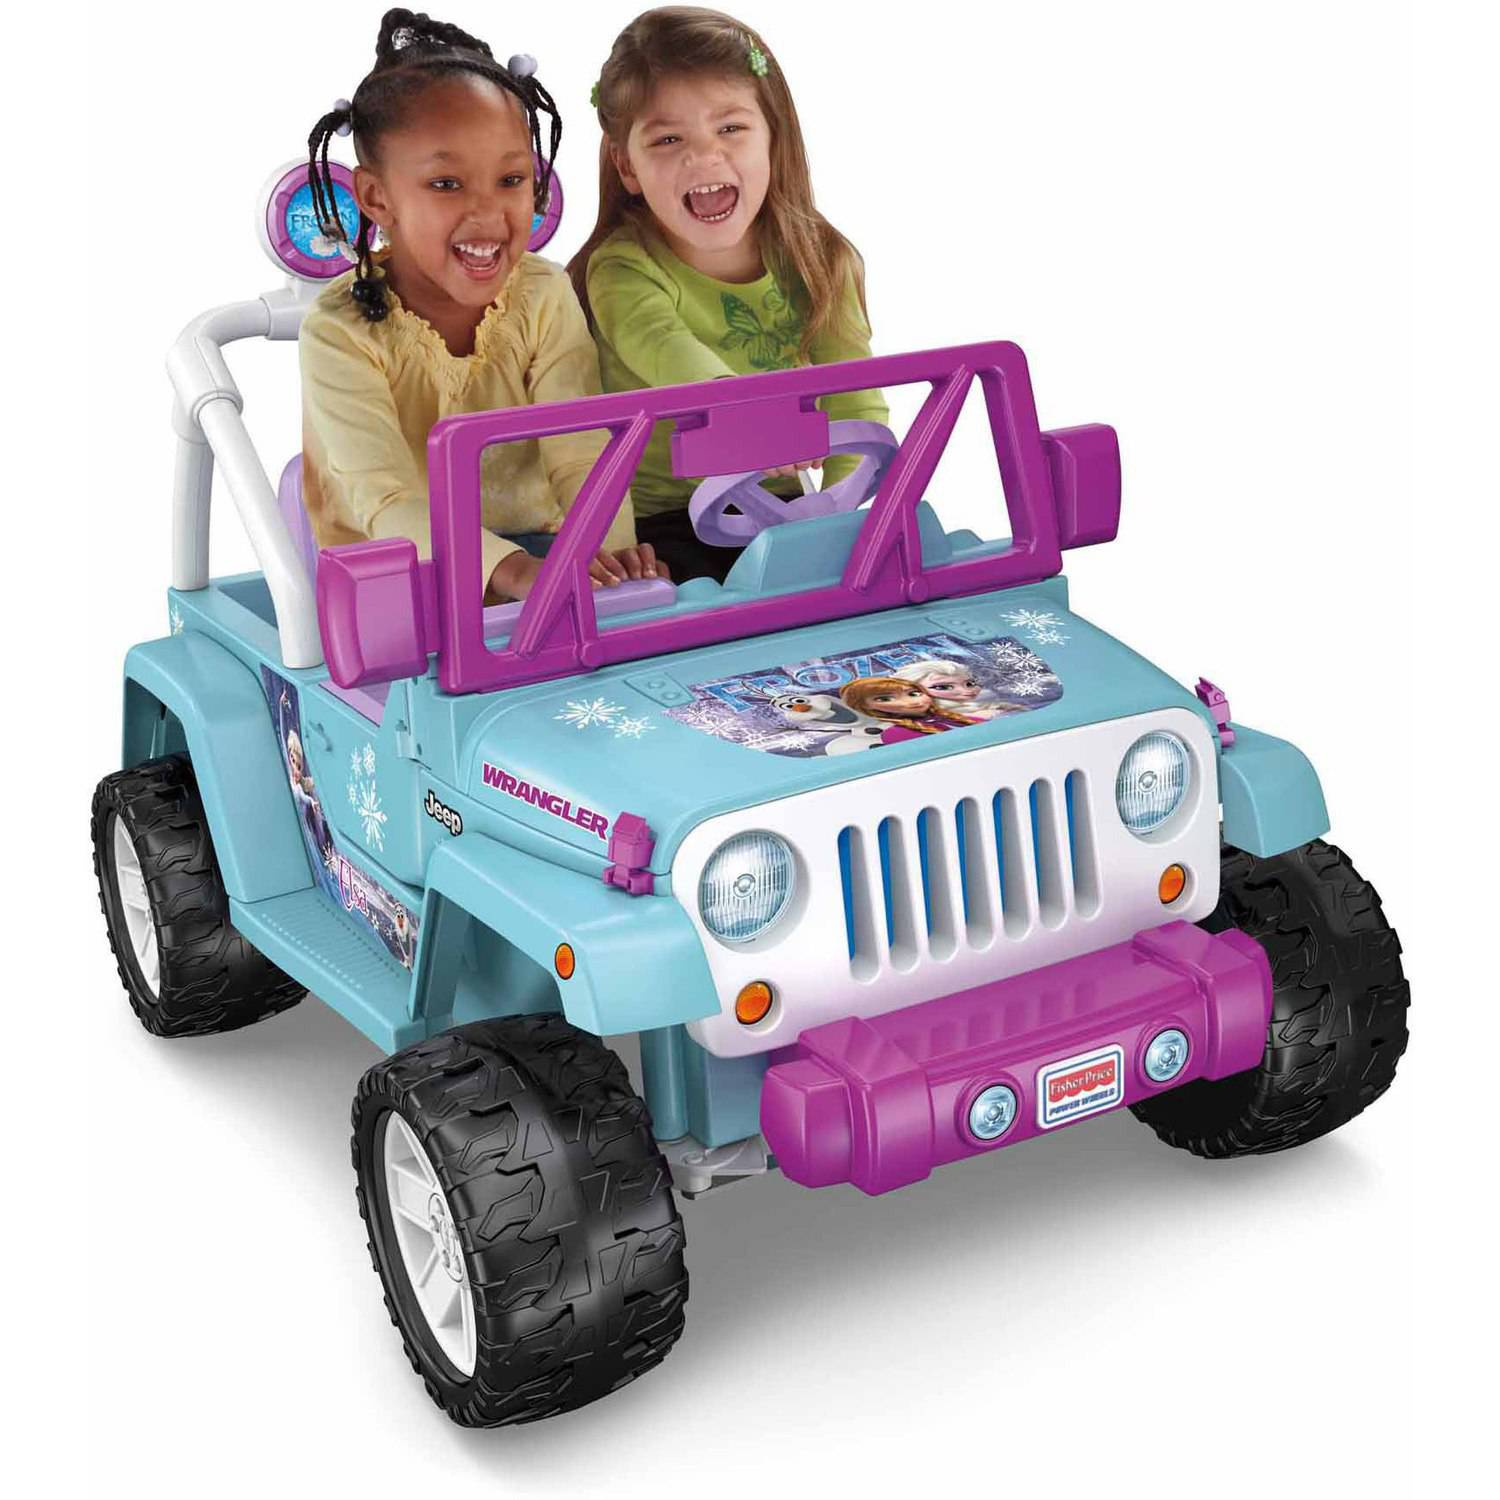 Power wheels disney frozen jeep wrangler 12 volt battery powered ride on walmart com